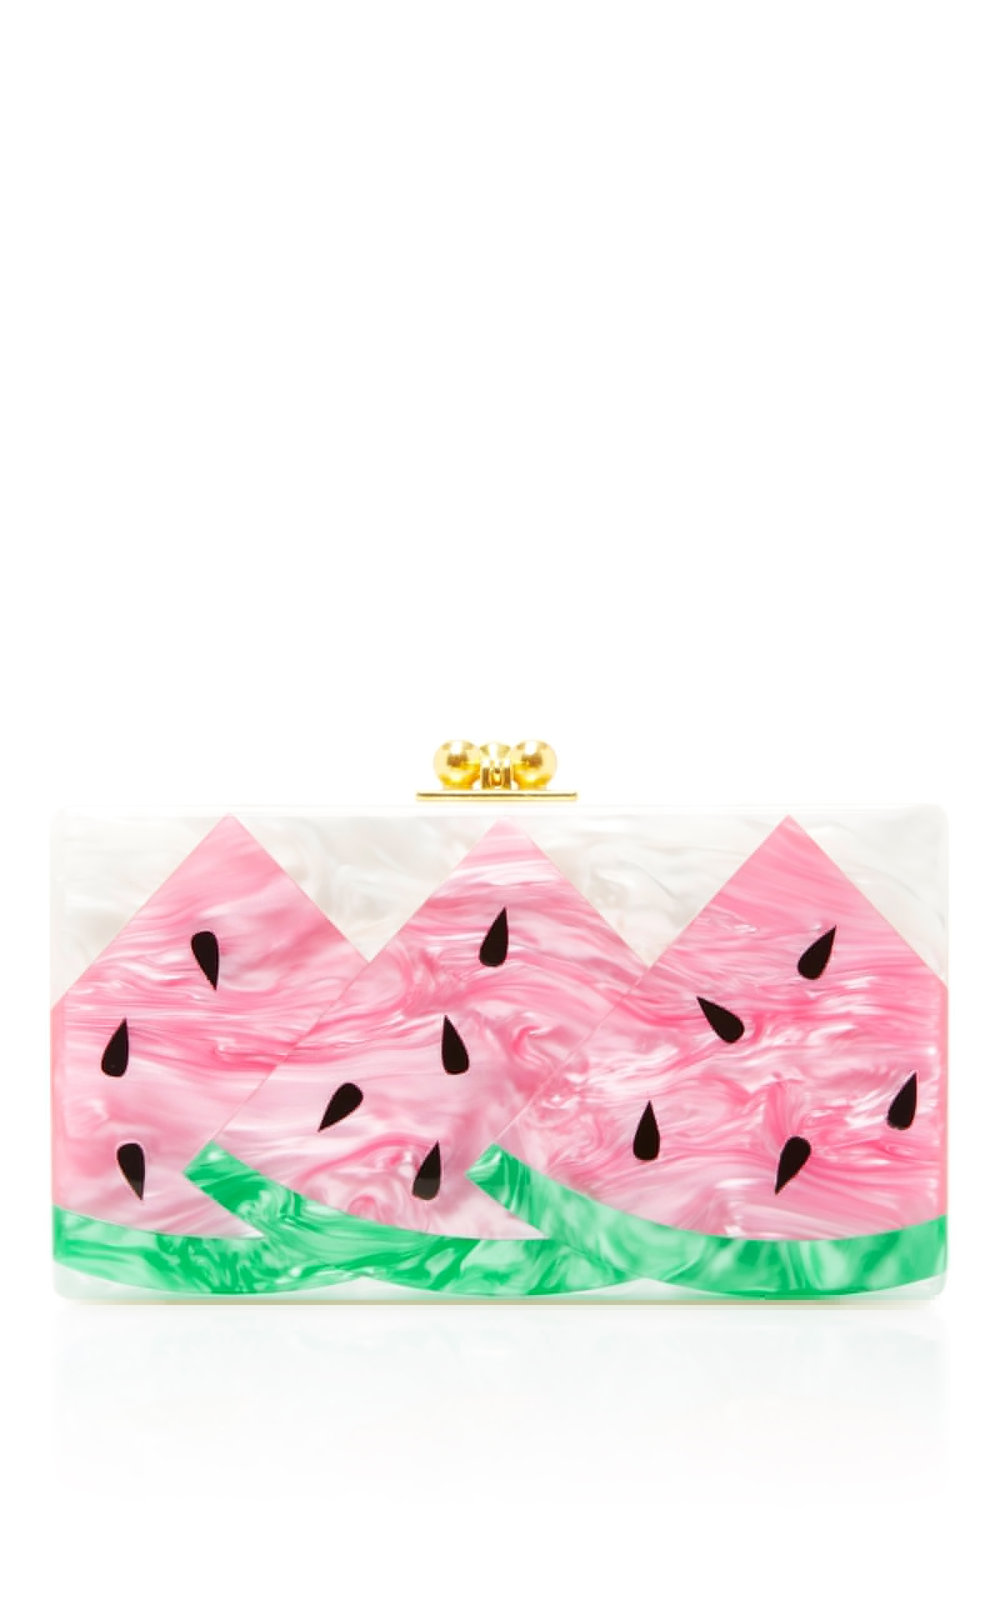 large_edie-parker-light-pink-m-o-exclusive-jean-watermelon-clutch.jpg